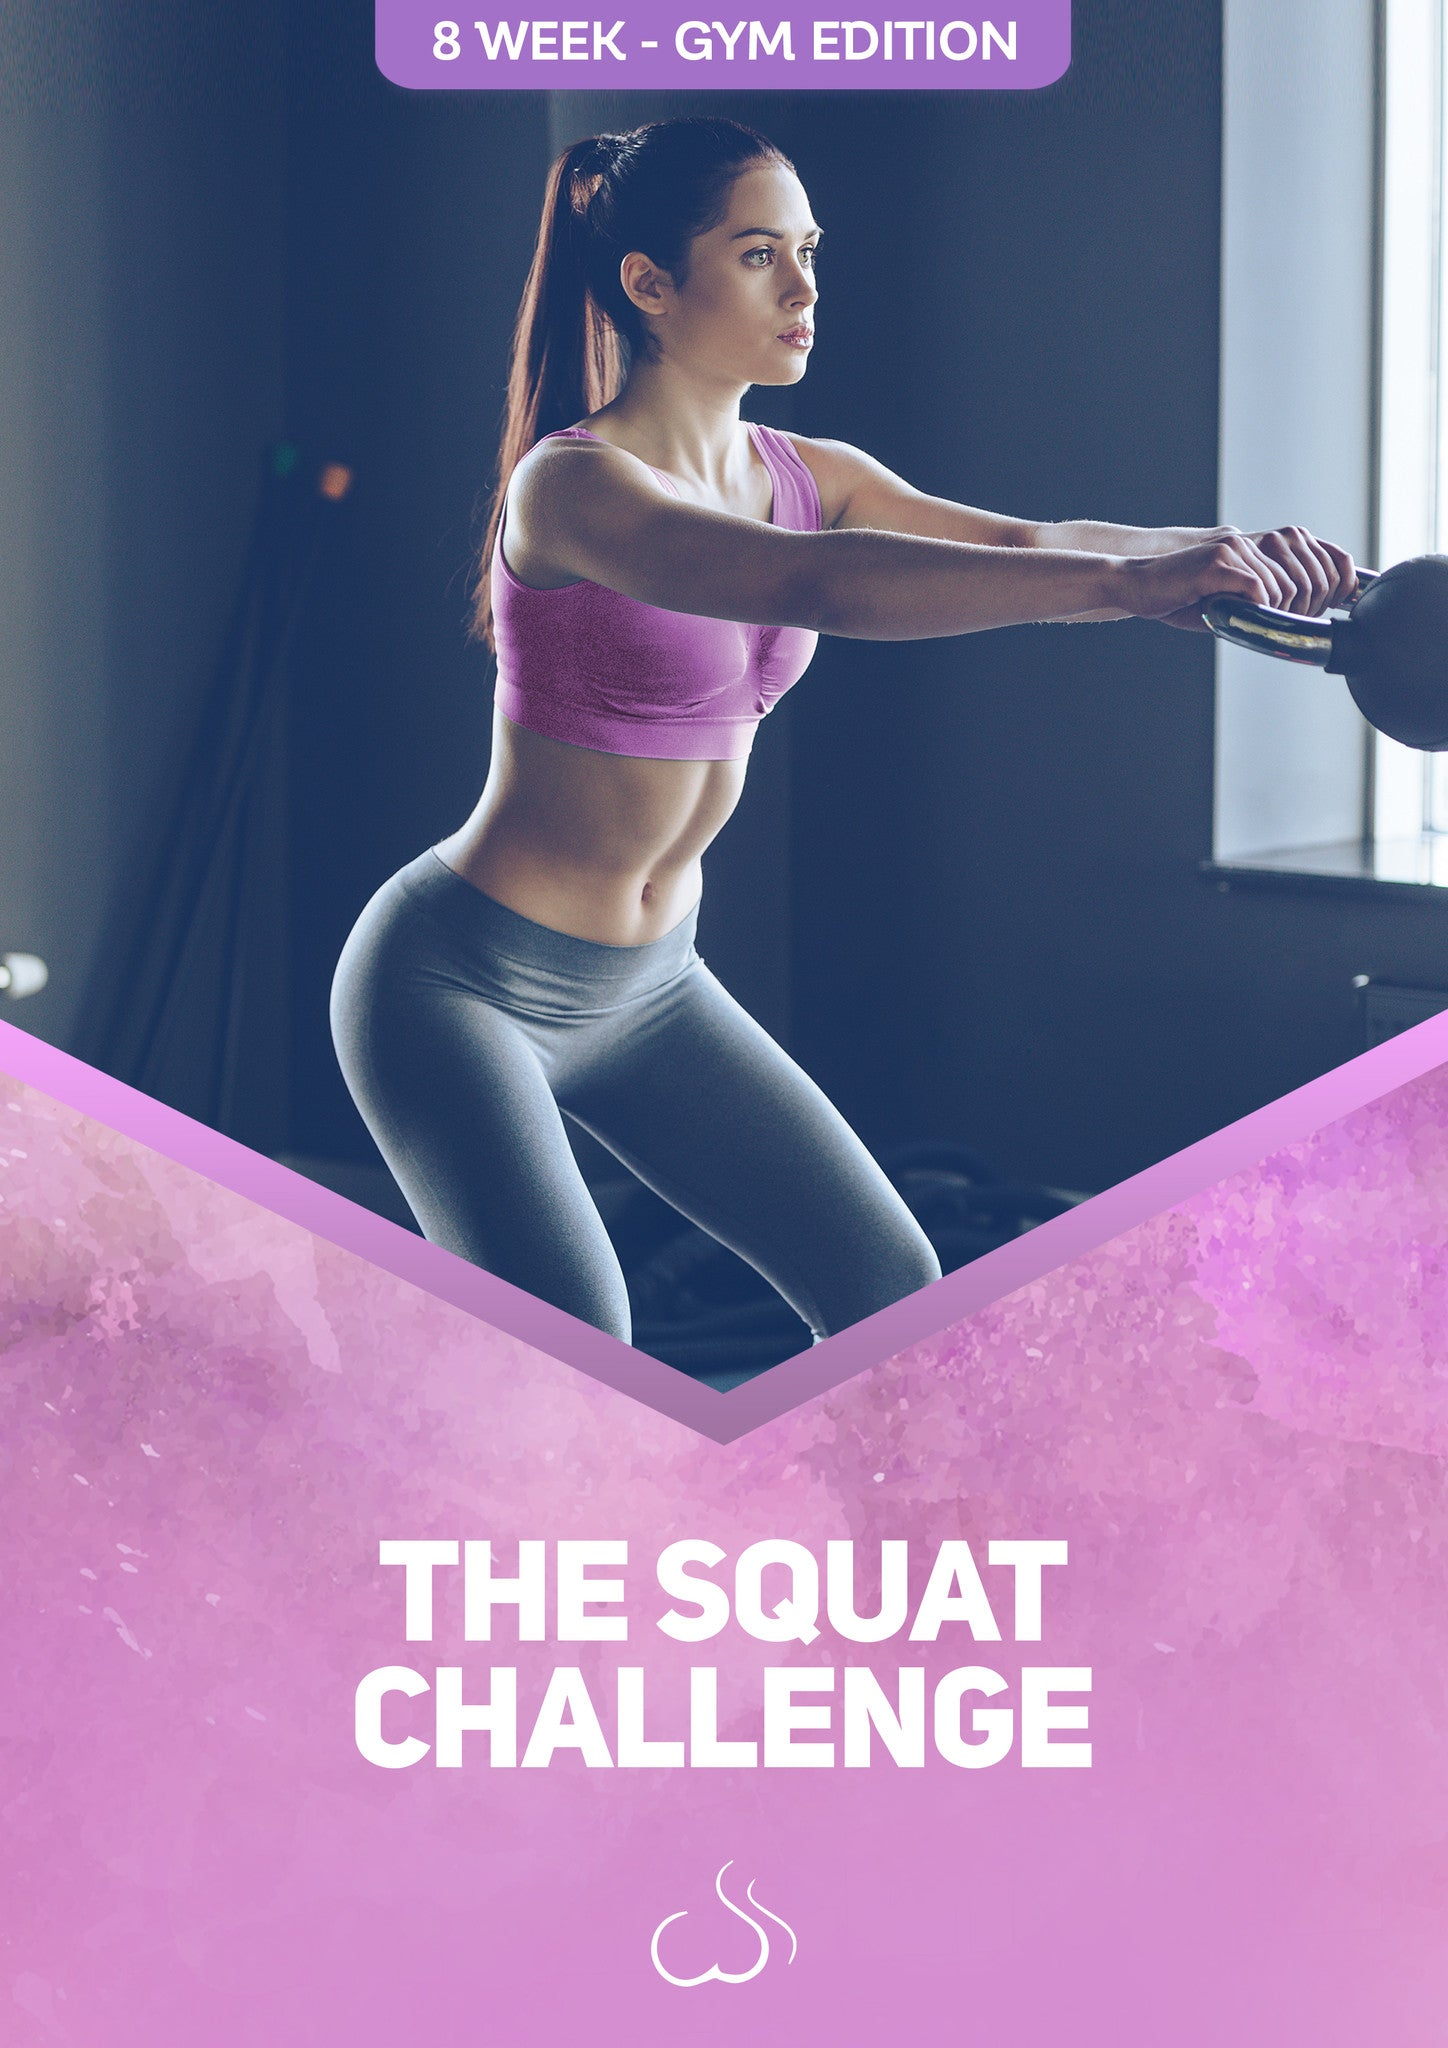 THE SQUAT CHALLENGE 8 Week - Gym edition 2.1